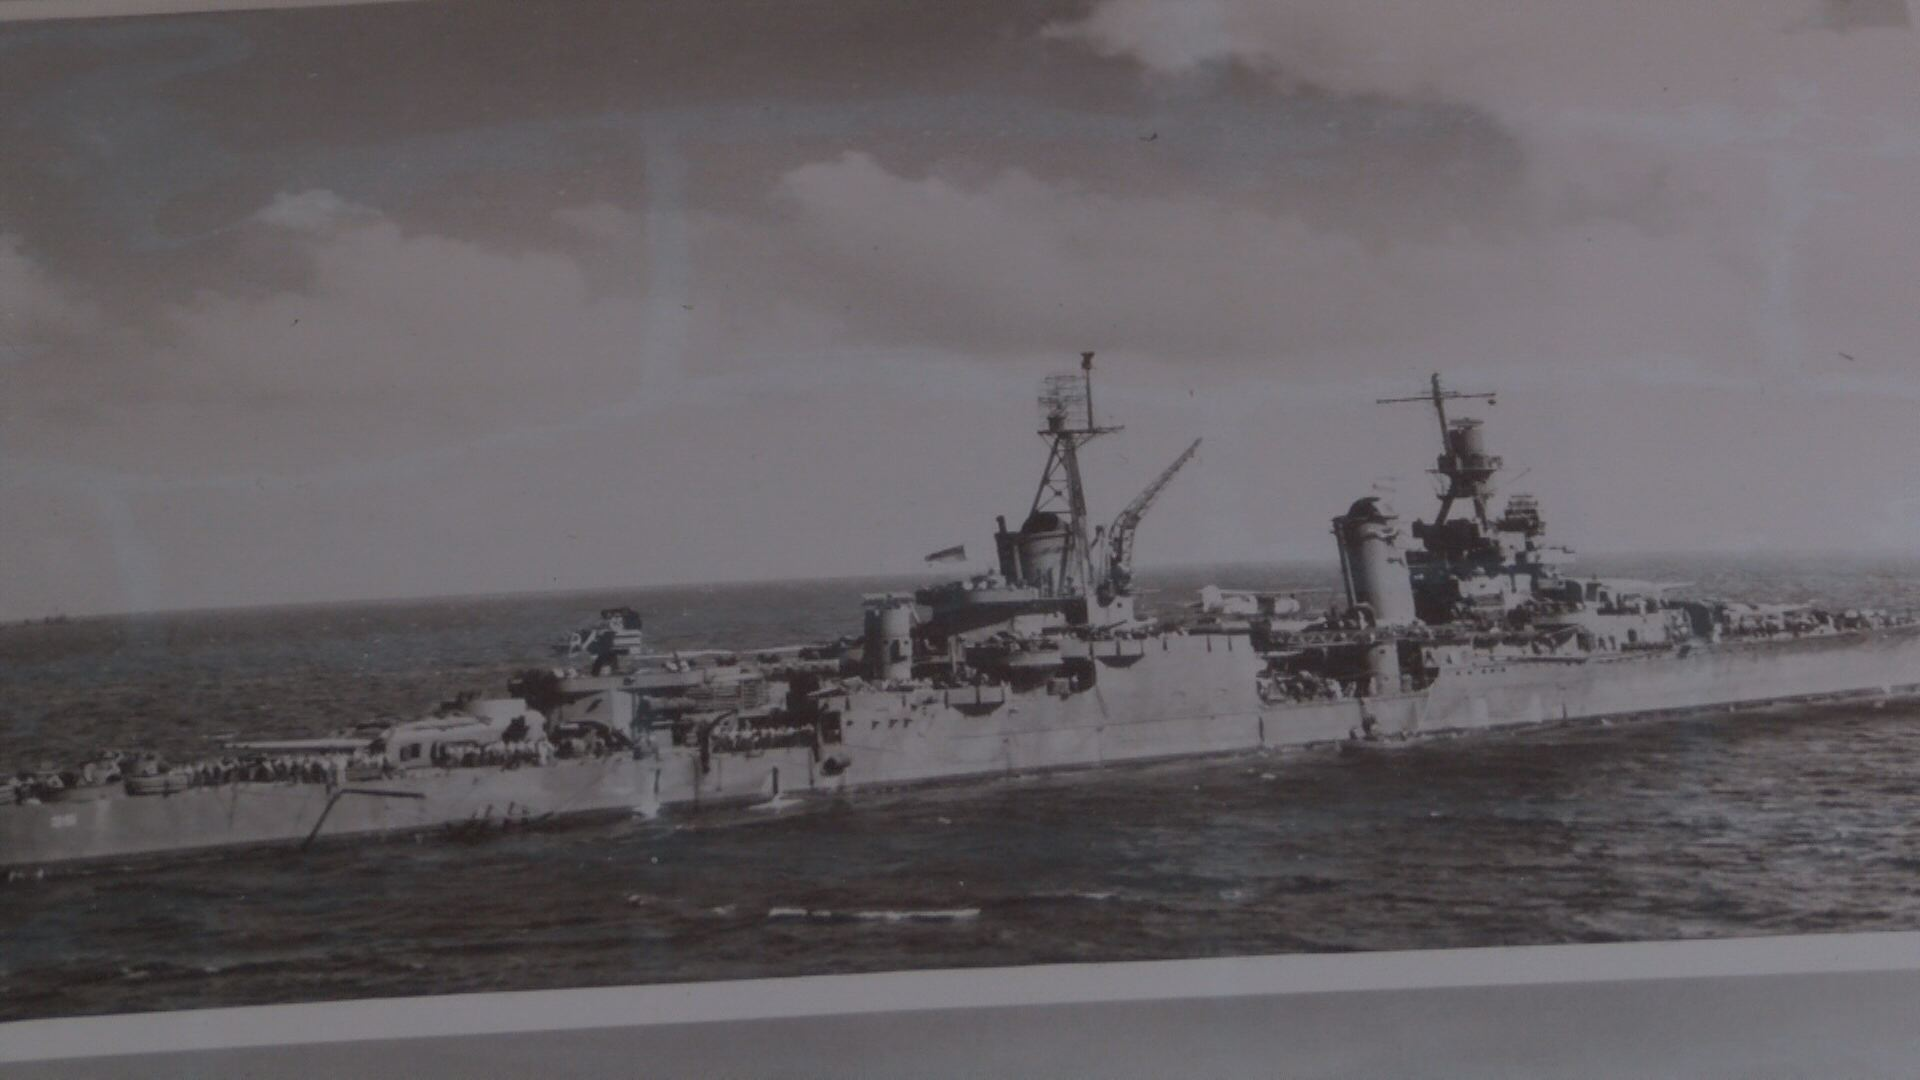 The battleship USS Indianapolis performed a top secret mission before it was sunk: delivering the components of the atomic bomb that was dropped on Hiroshima. (Thomas Gray/WCYB)